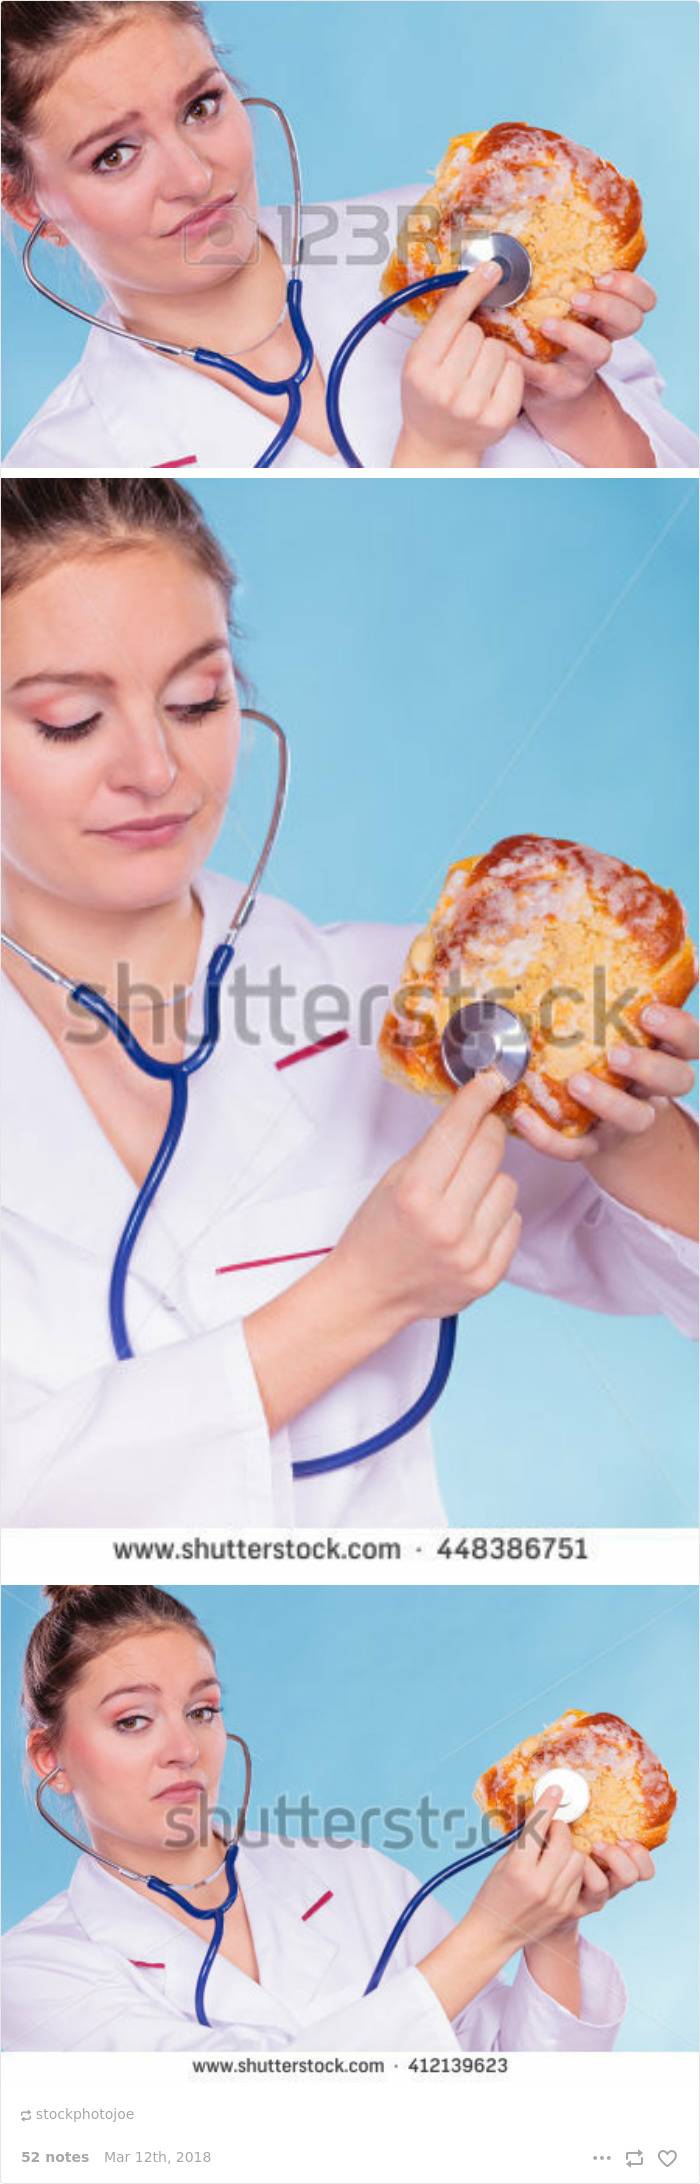 Disgusted Dietitian Nutritionist Checking Examine Sweet Roll Bun With Stethoscope. Because Why Not?